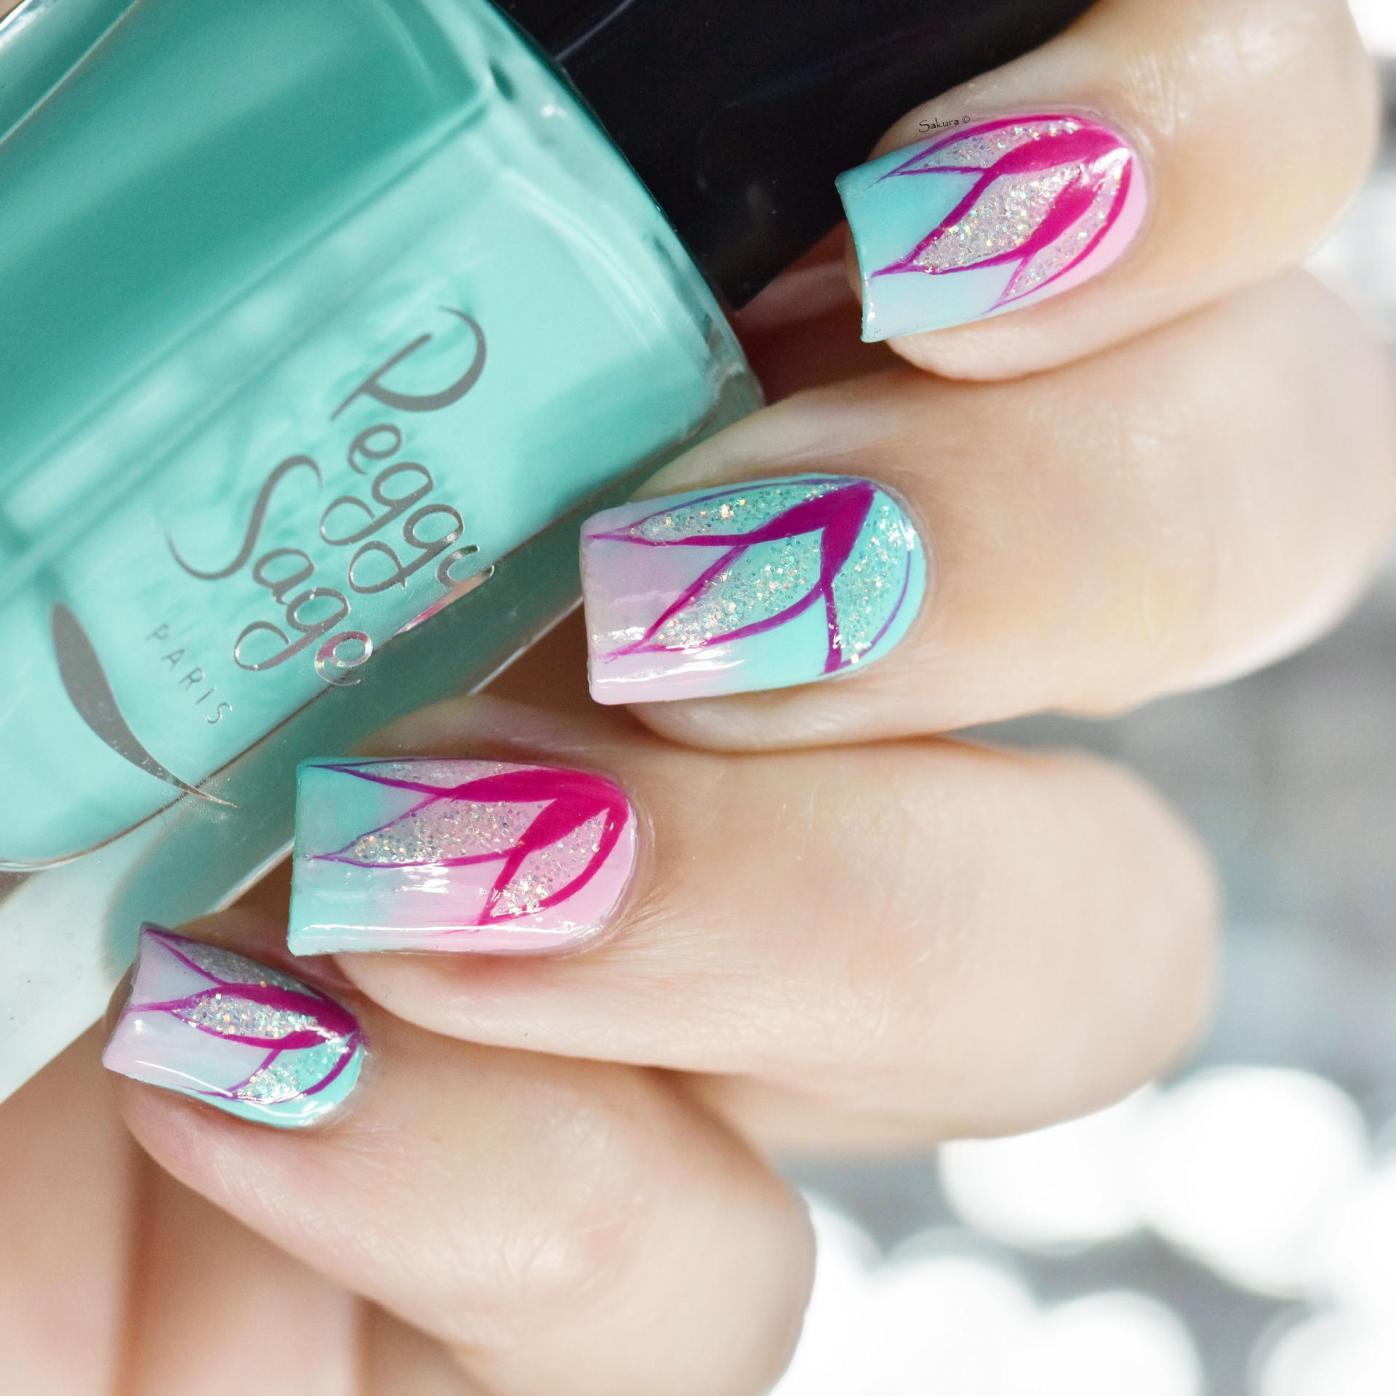 NAIL ART PETALES DEGRADEES 3